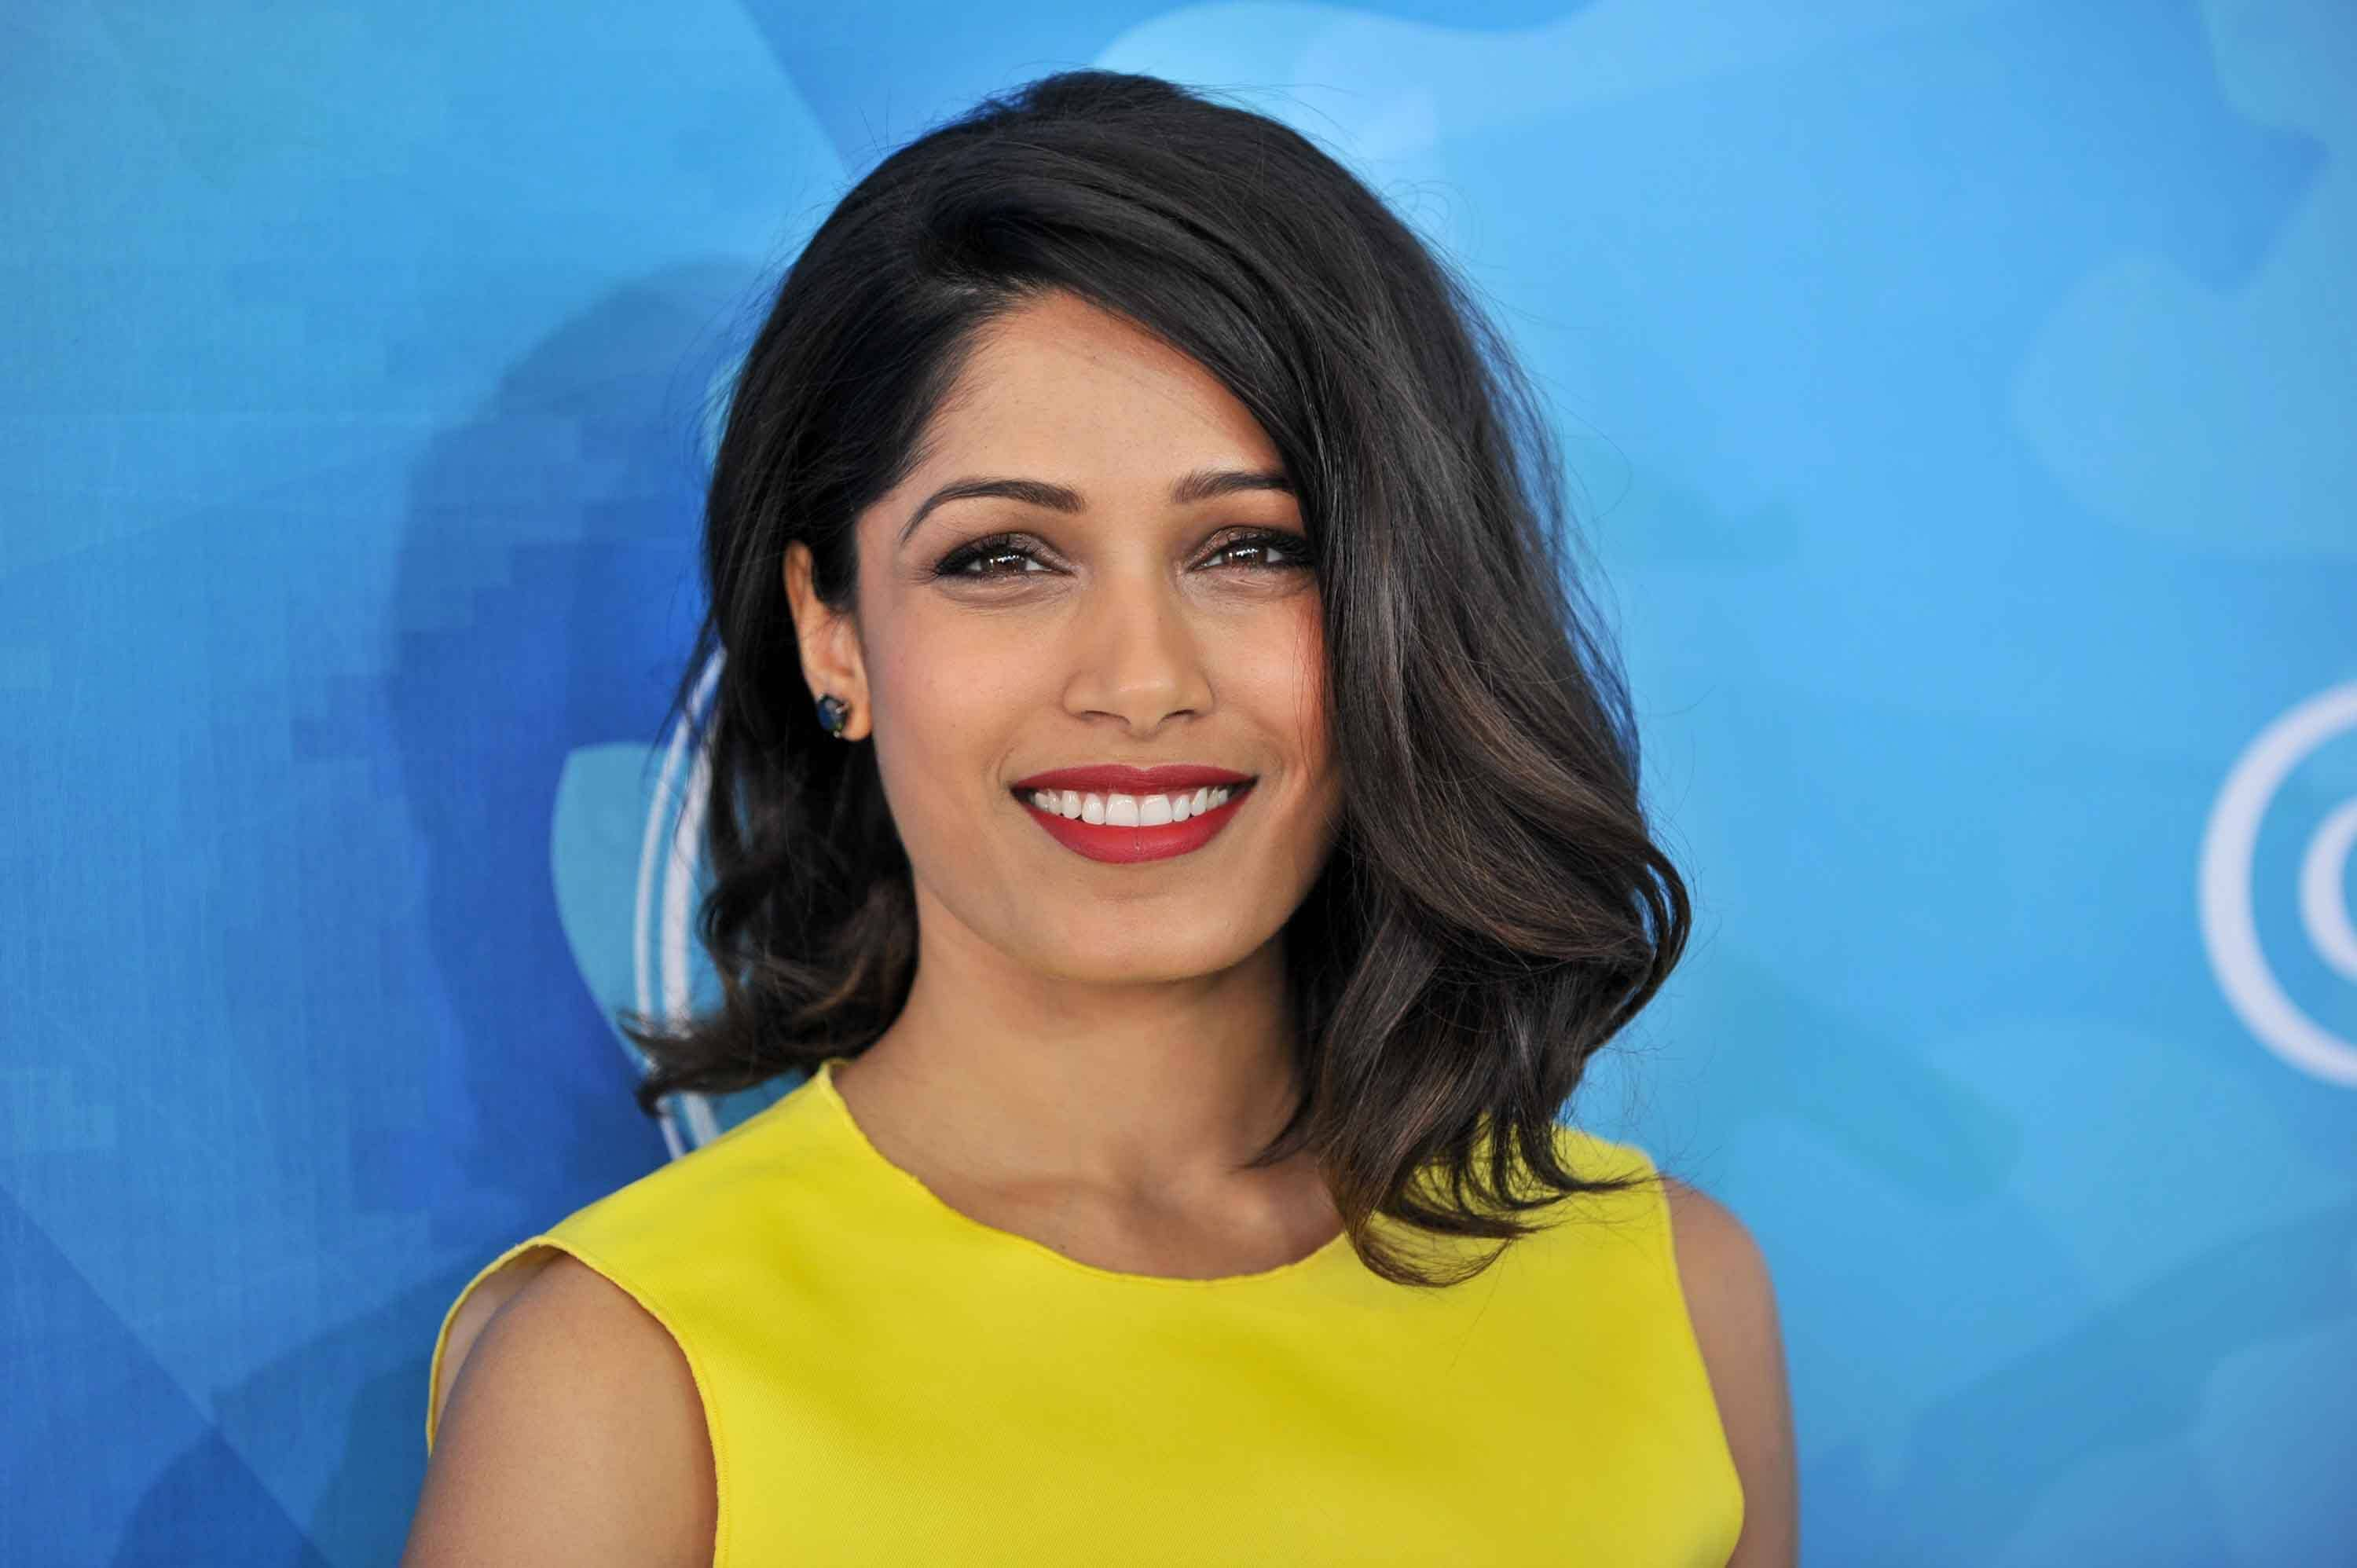 The wavy bob: 10 Perfect examples of playful glamour Freida Pinto